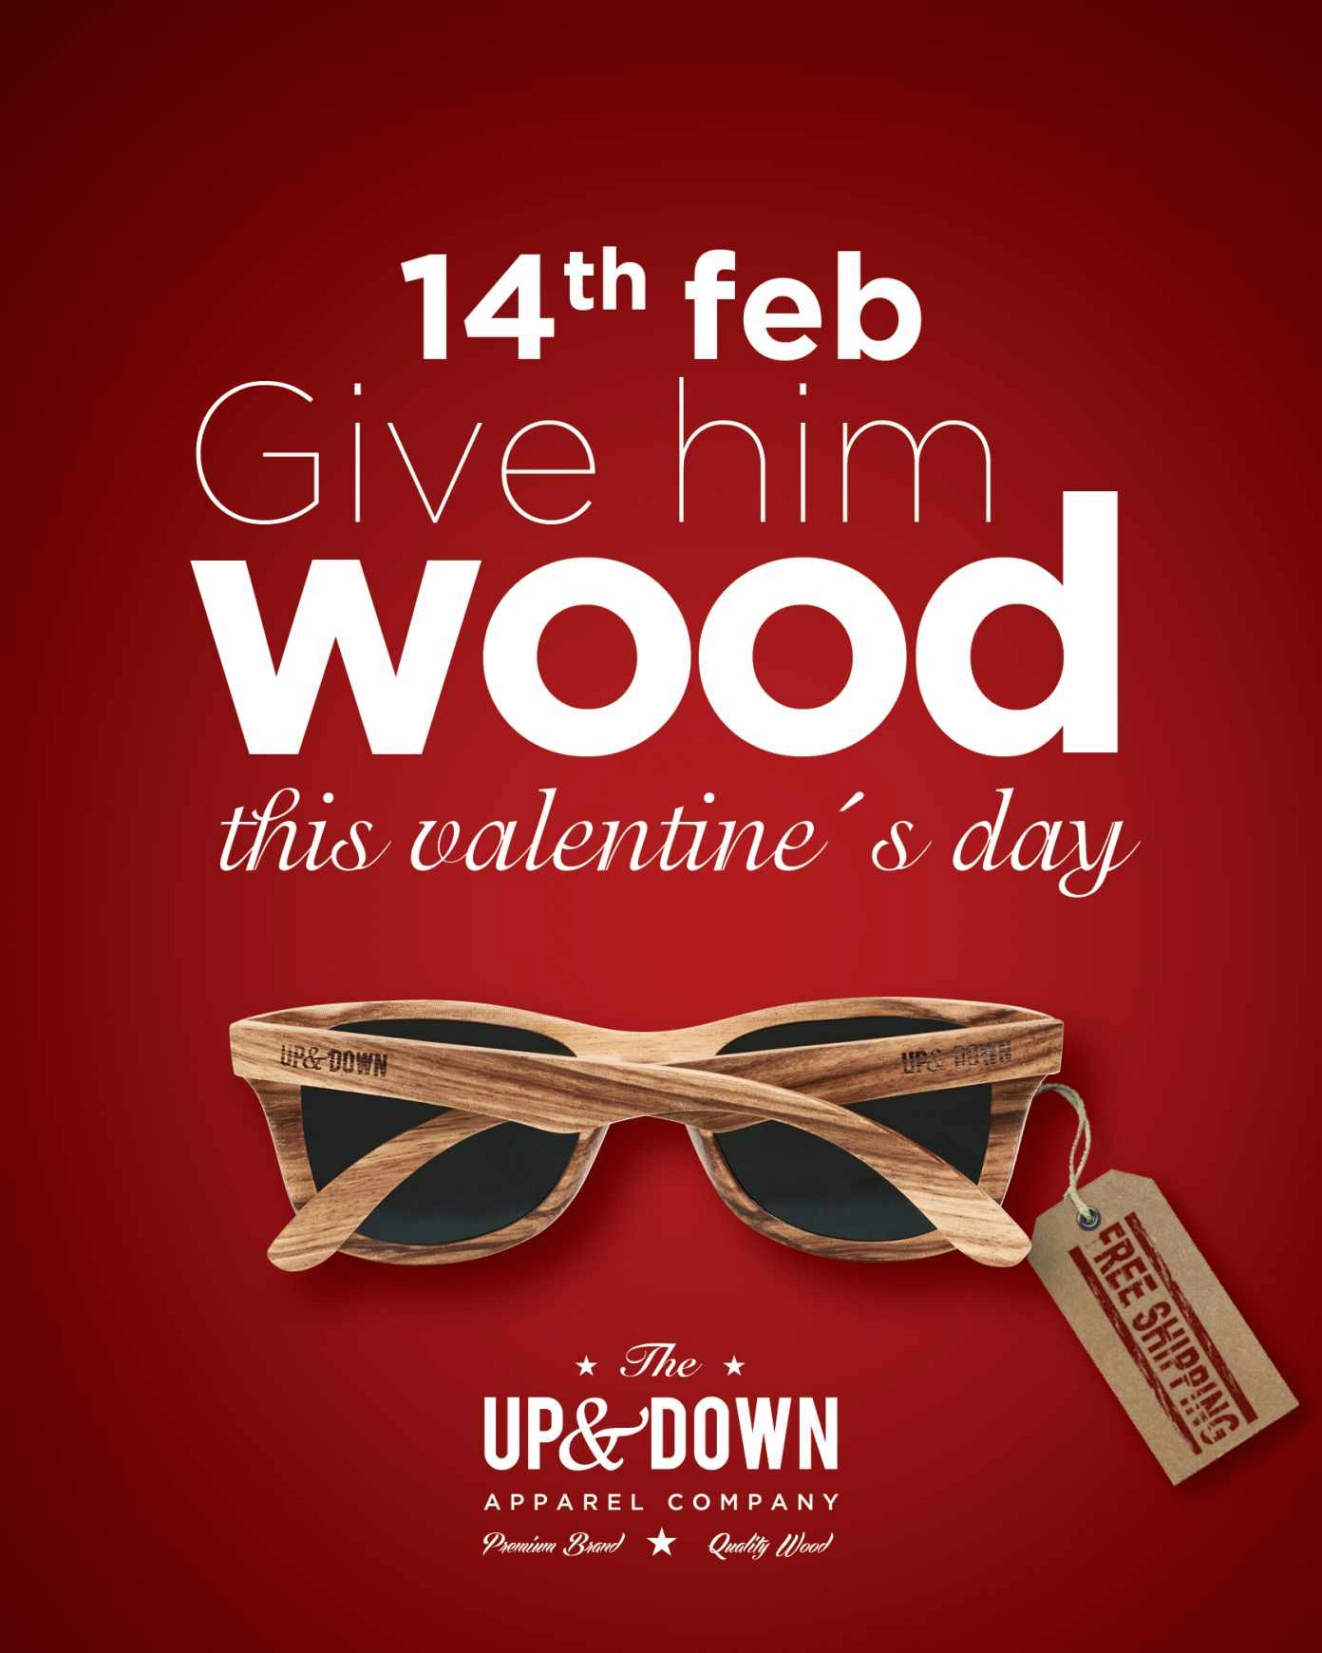 50+ Most Creative Valentine's Day Advertisements